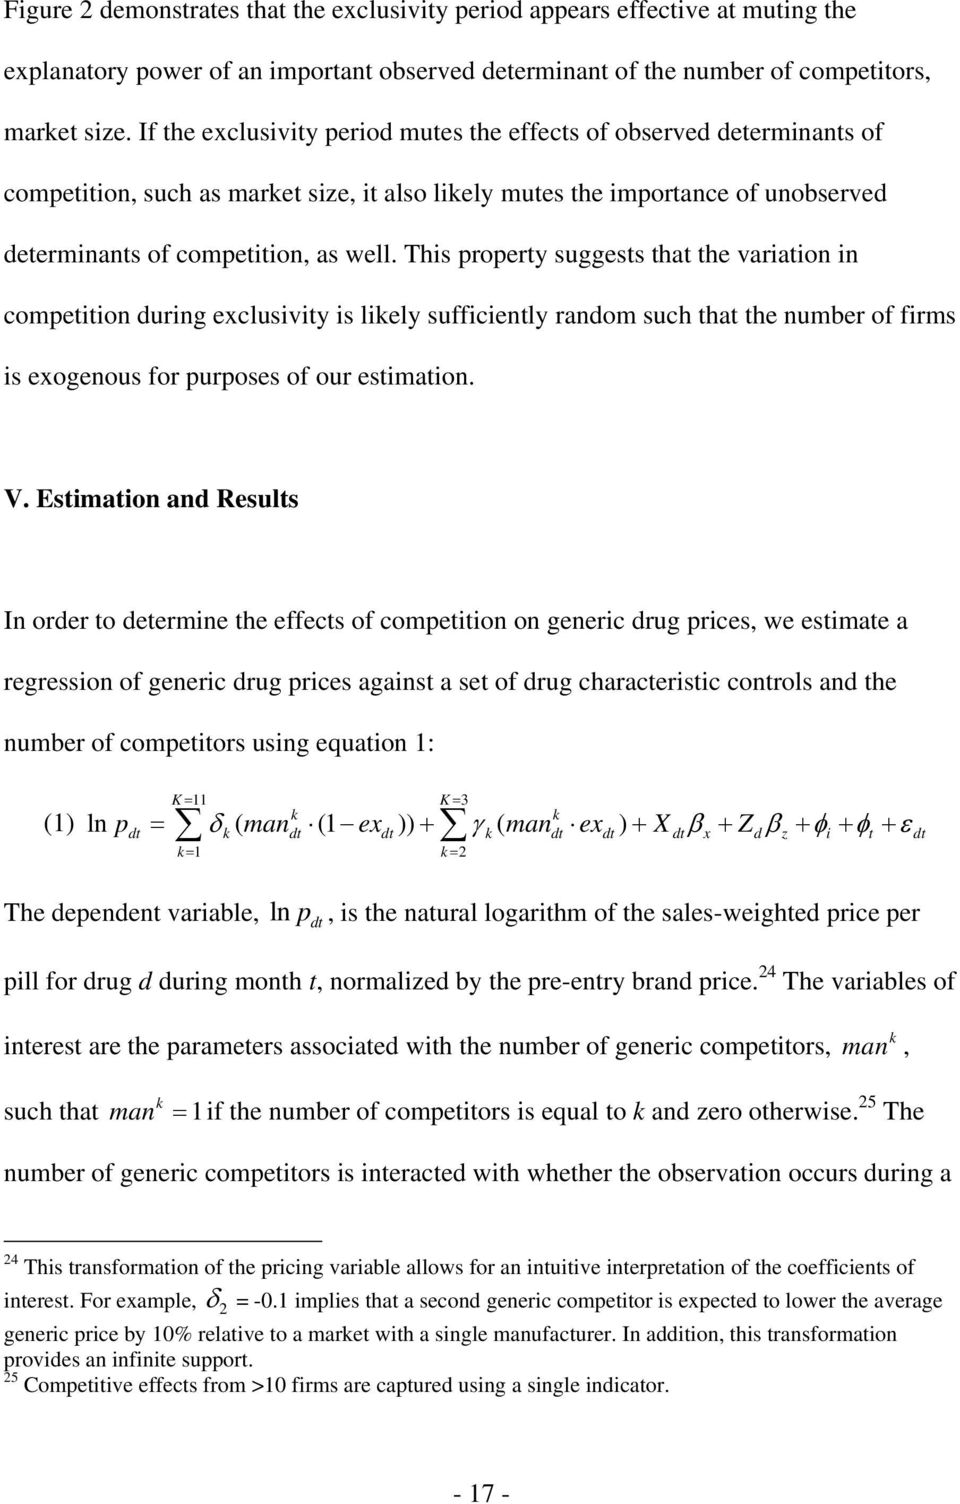 This property suggests that the variation in competition during exclusivity is likely sufficiently random such that the number of firms is exogenous for purposes of our estimation. V.